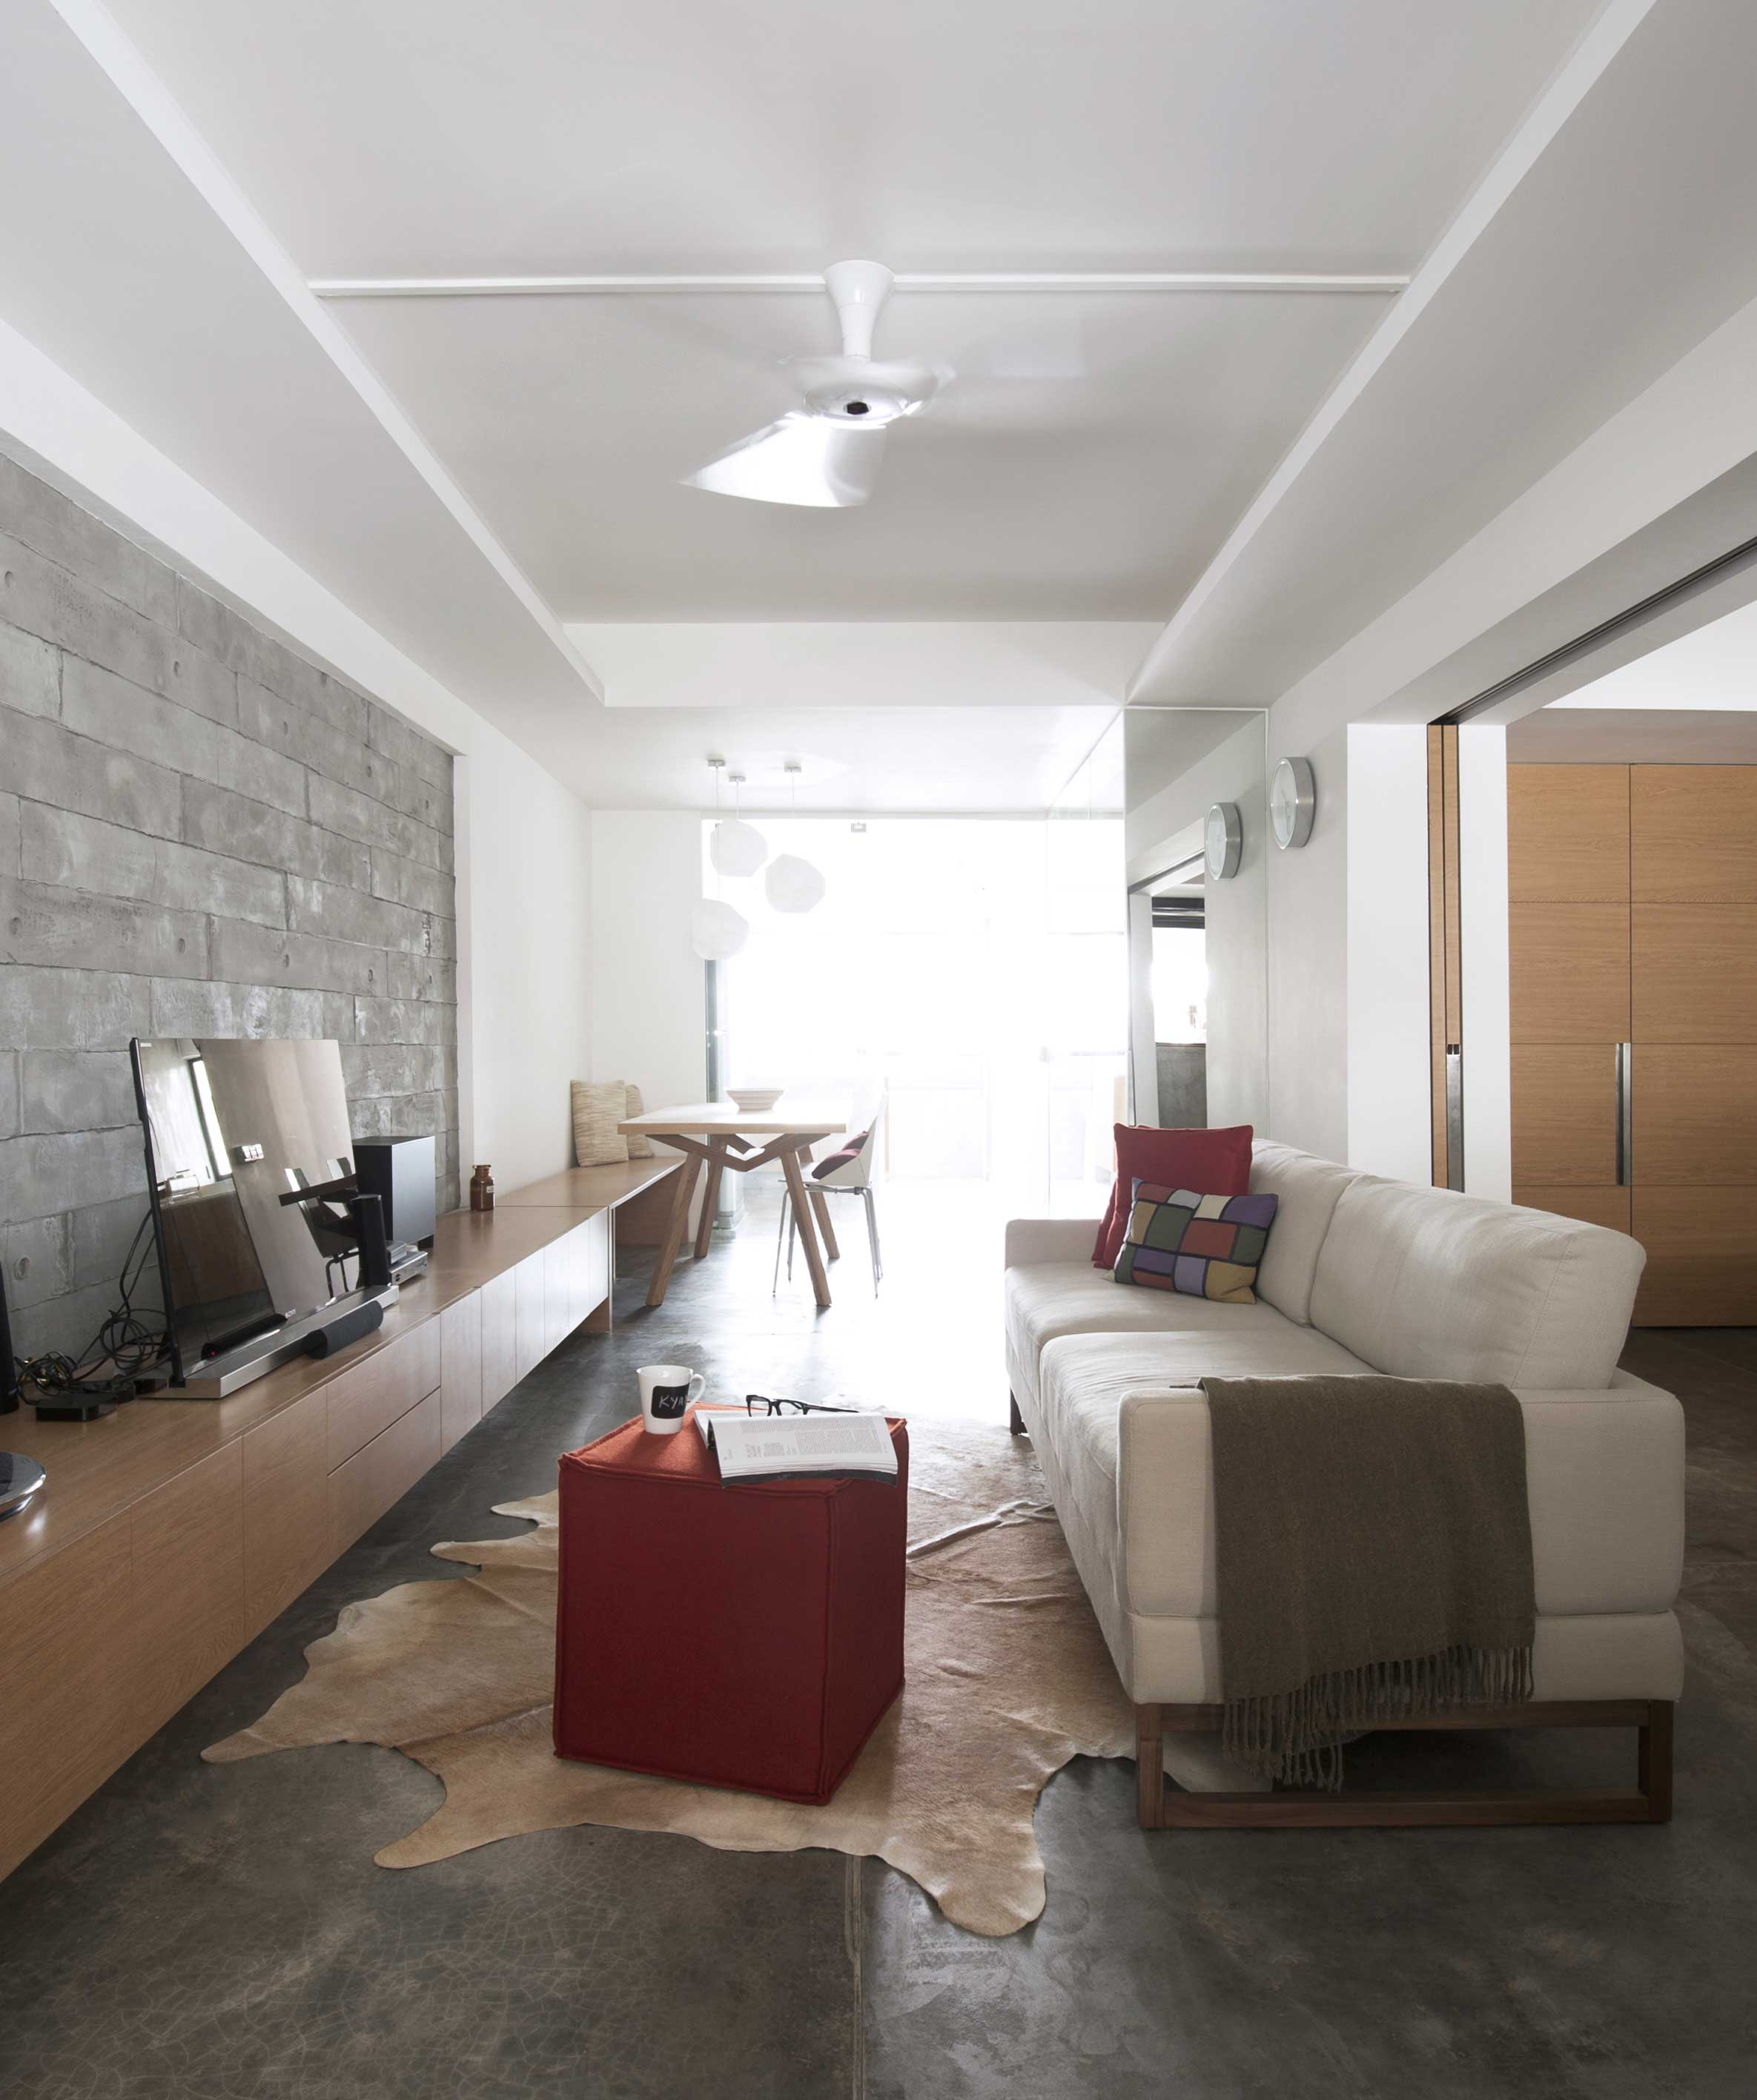 Apartments In Singapore: Contemporary Pint-sized Apartment In Singapore